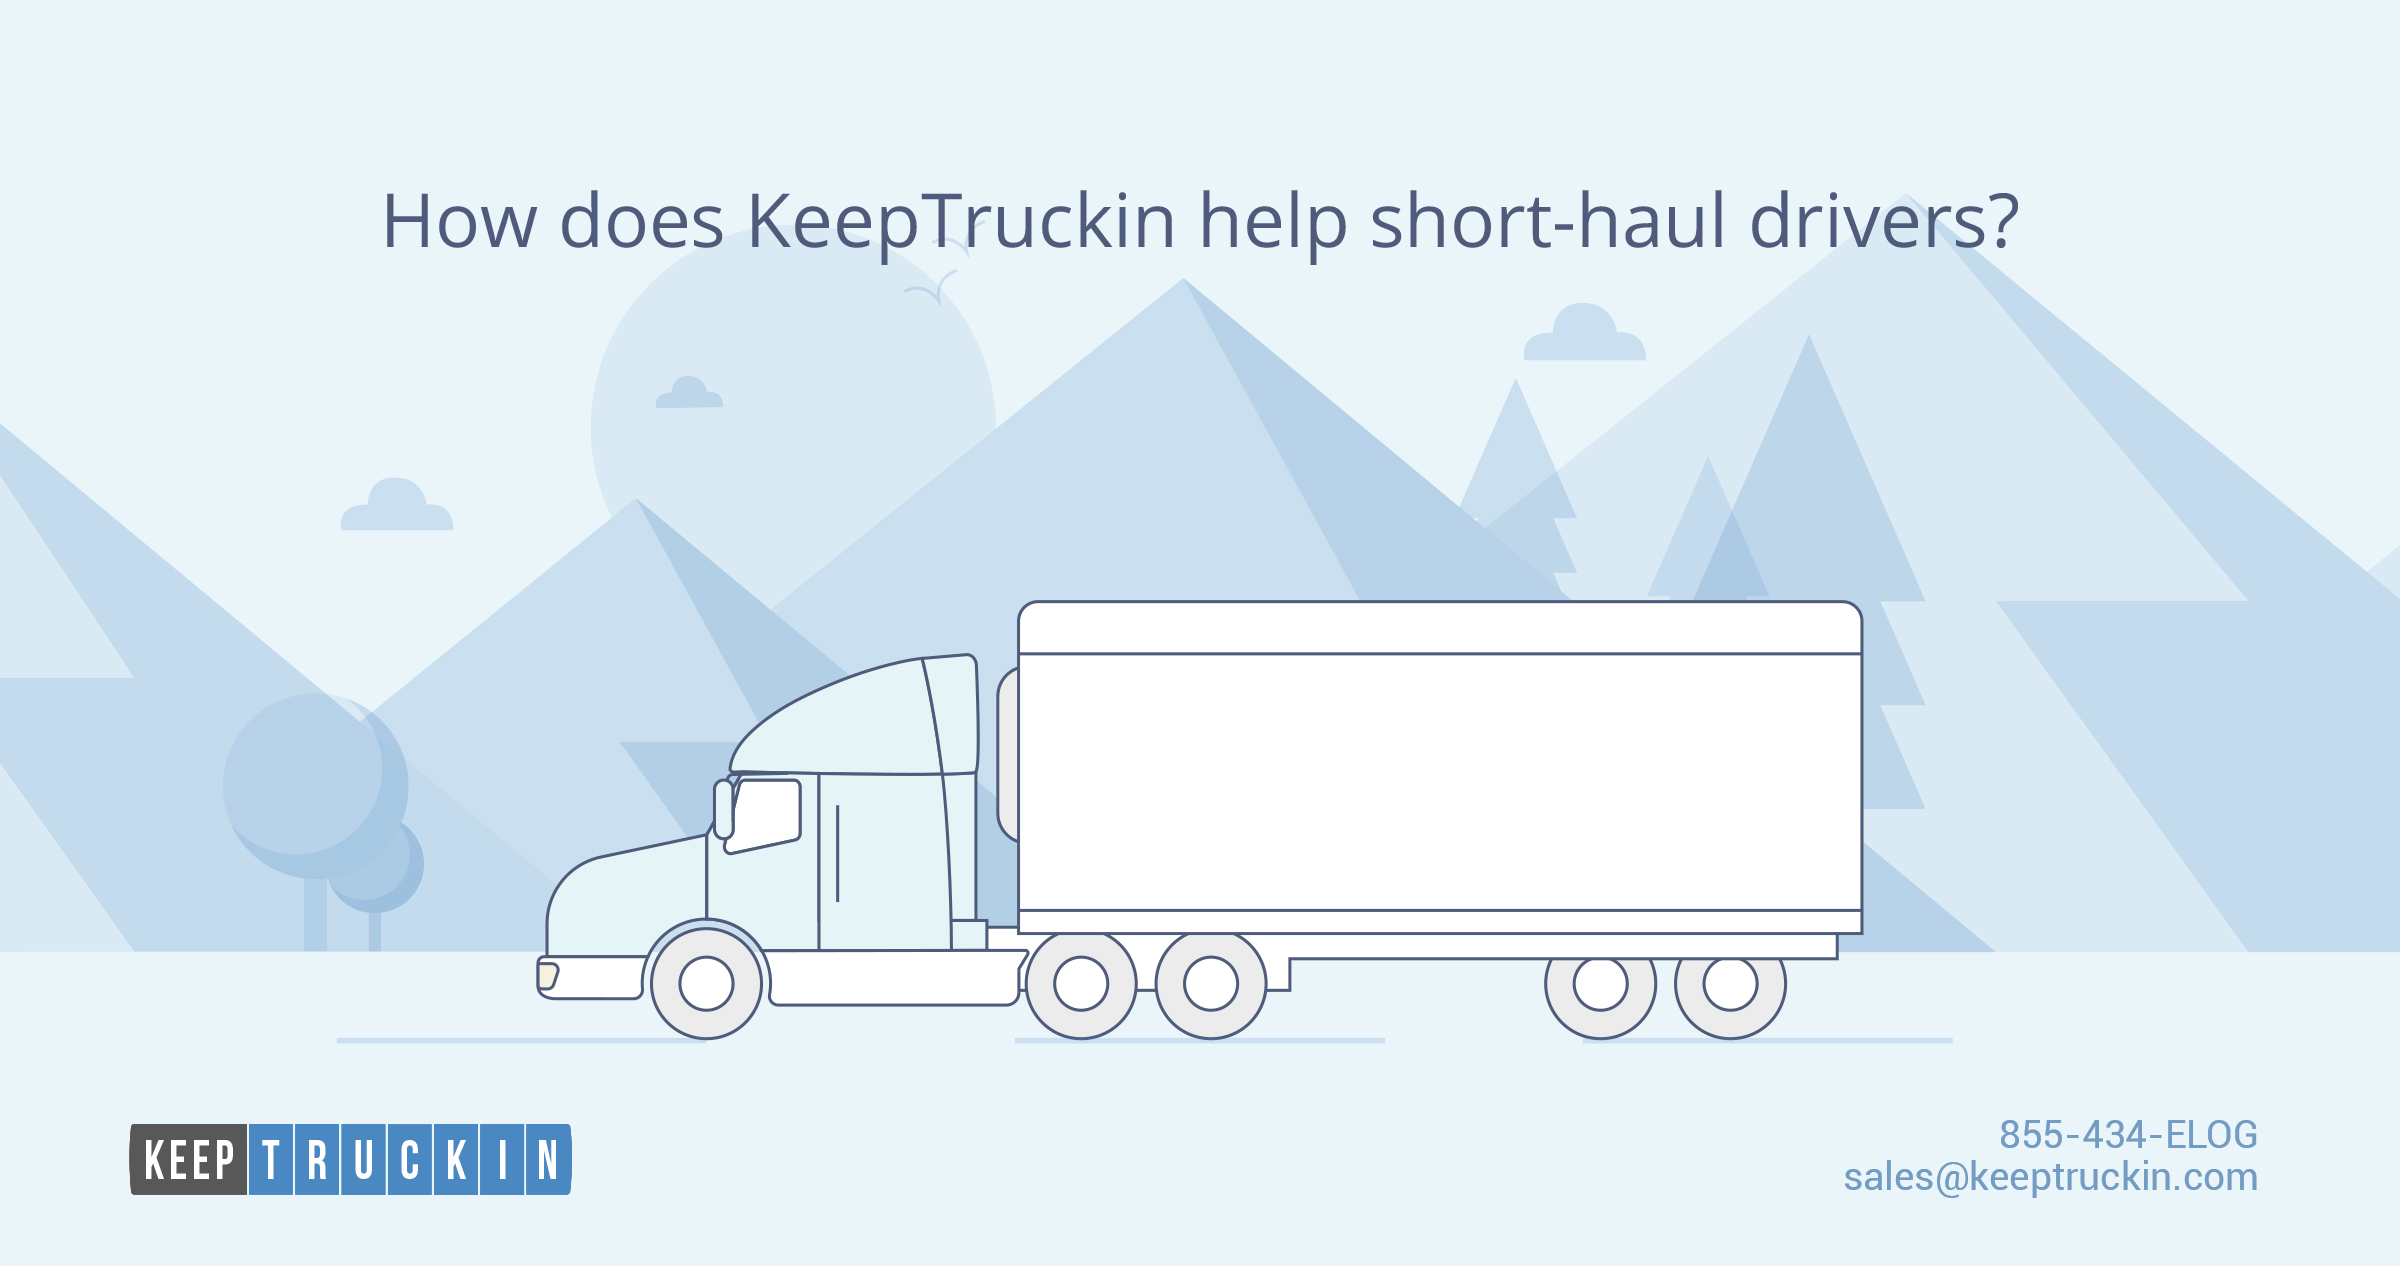 How does KeepTruckin help short-haul drivers?